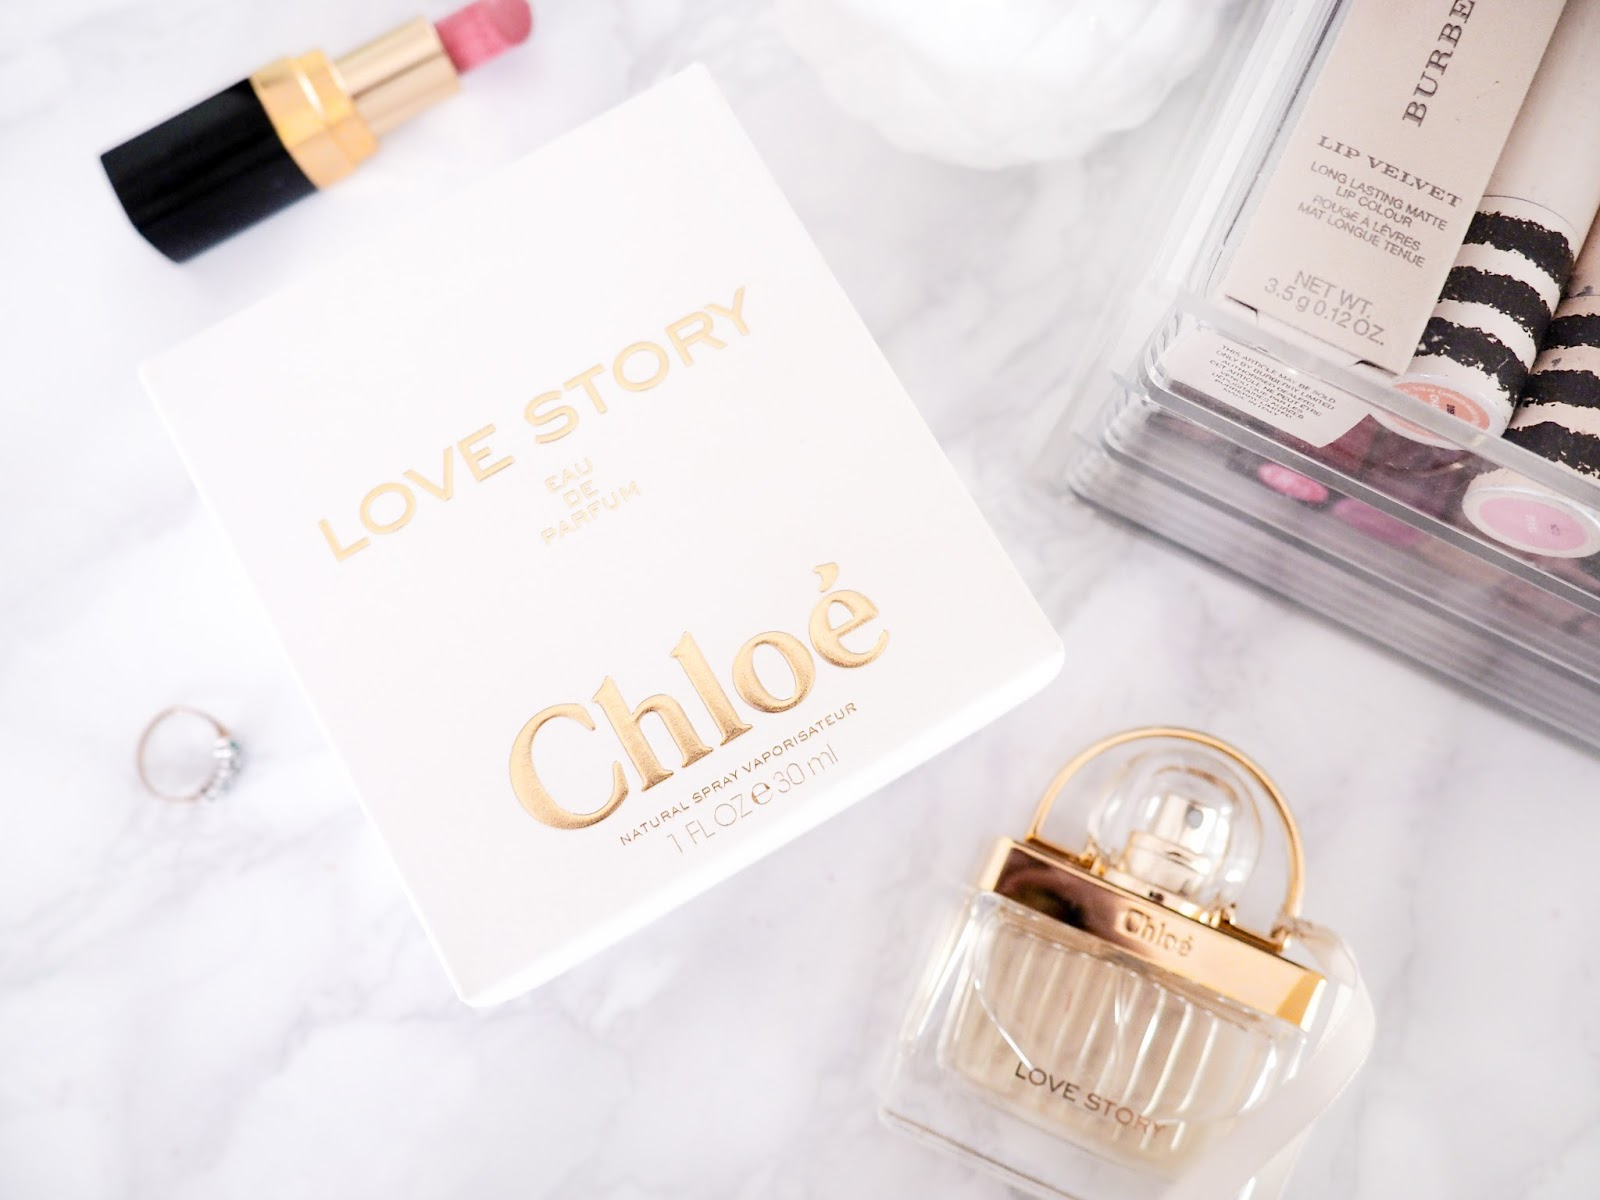 Chloé Love Story Eau de Parfum Review Debenhams